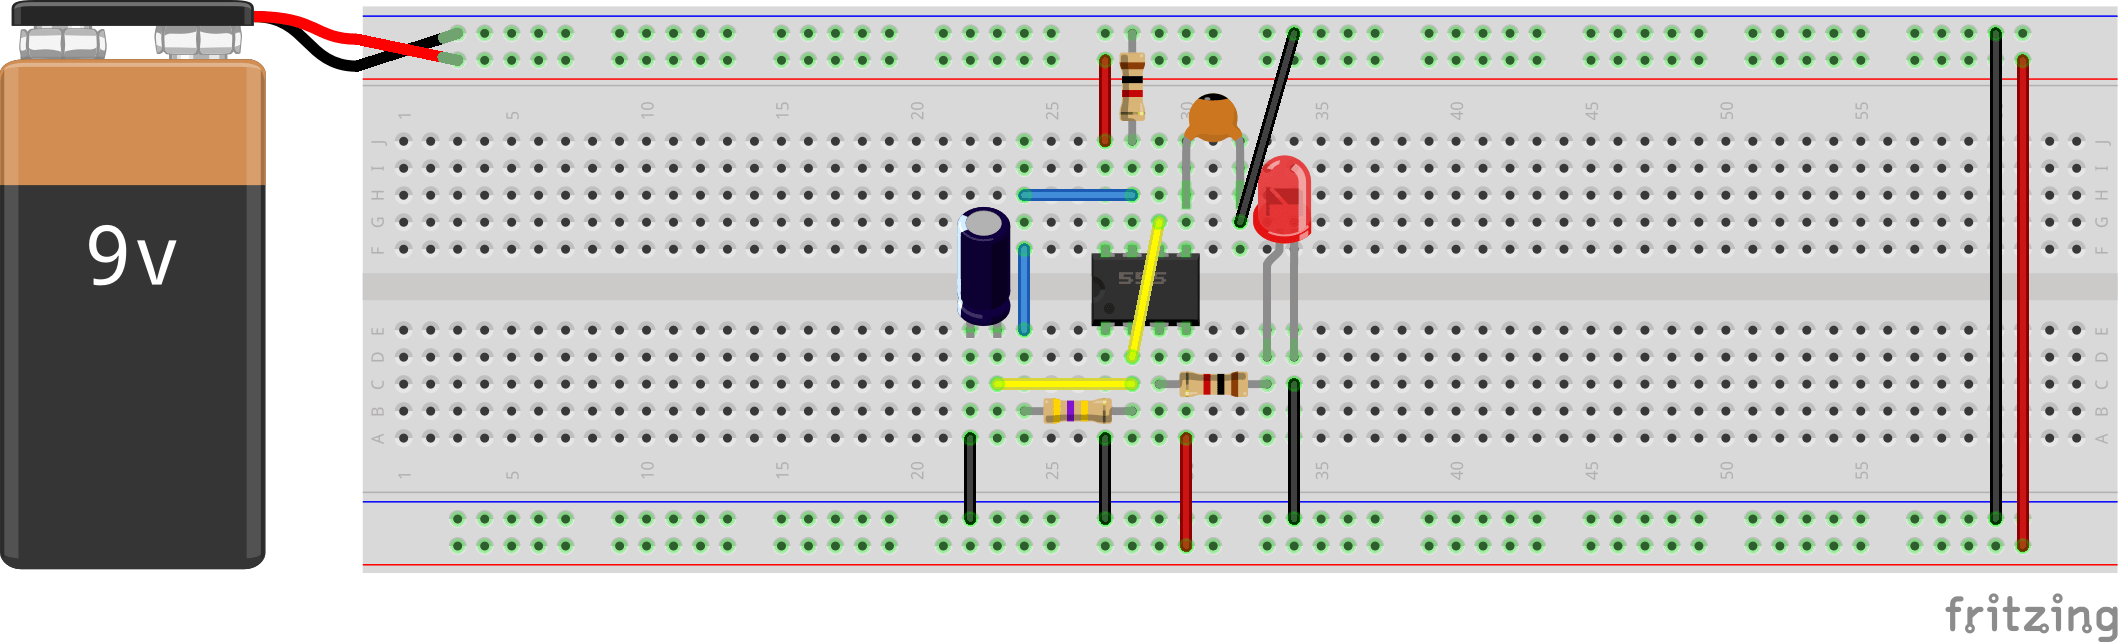 Another 555 Ic Project That Will Flash Leds In Such A Way That Light